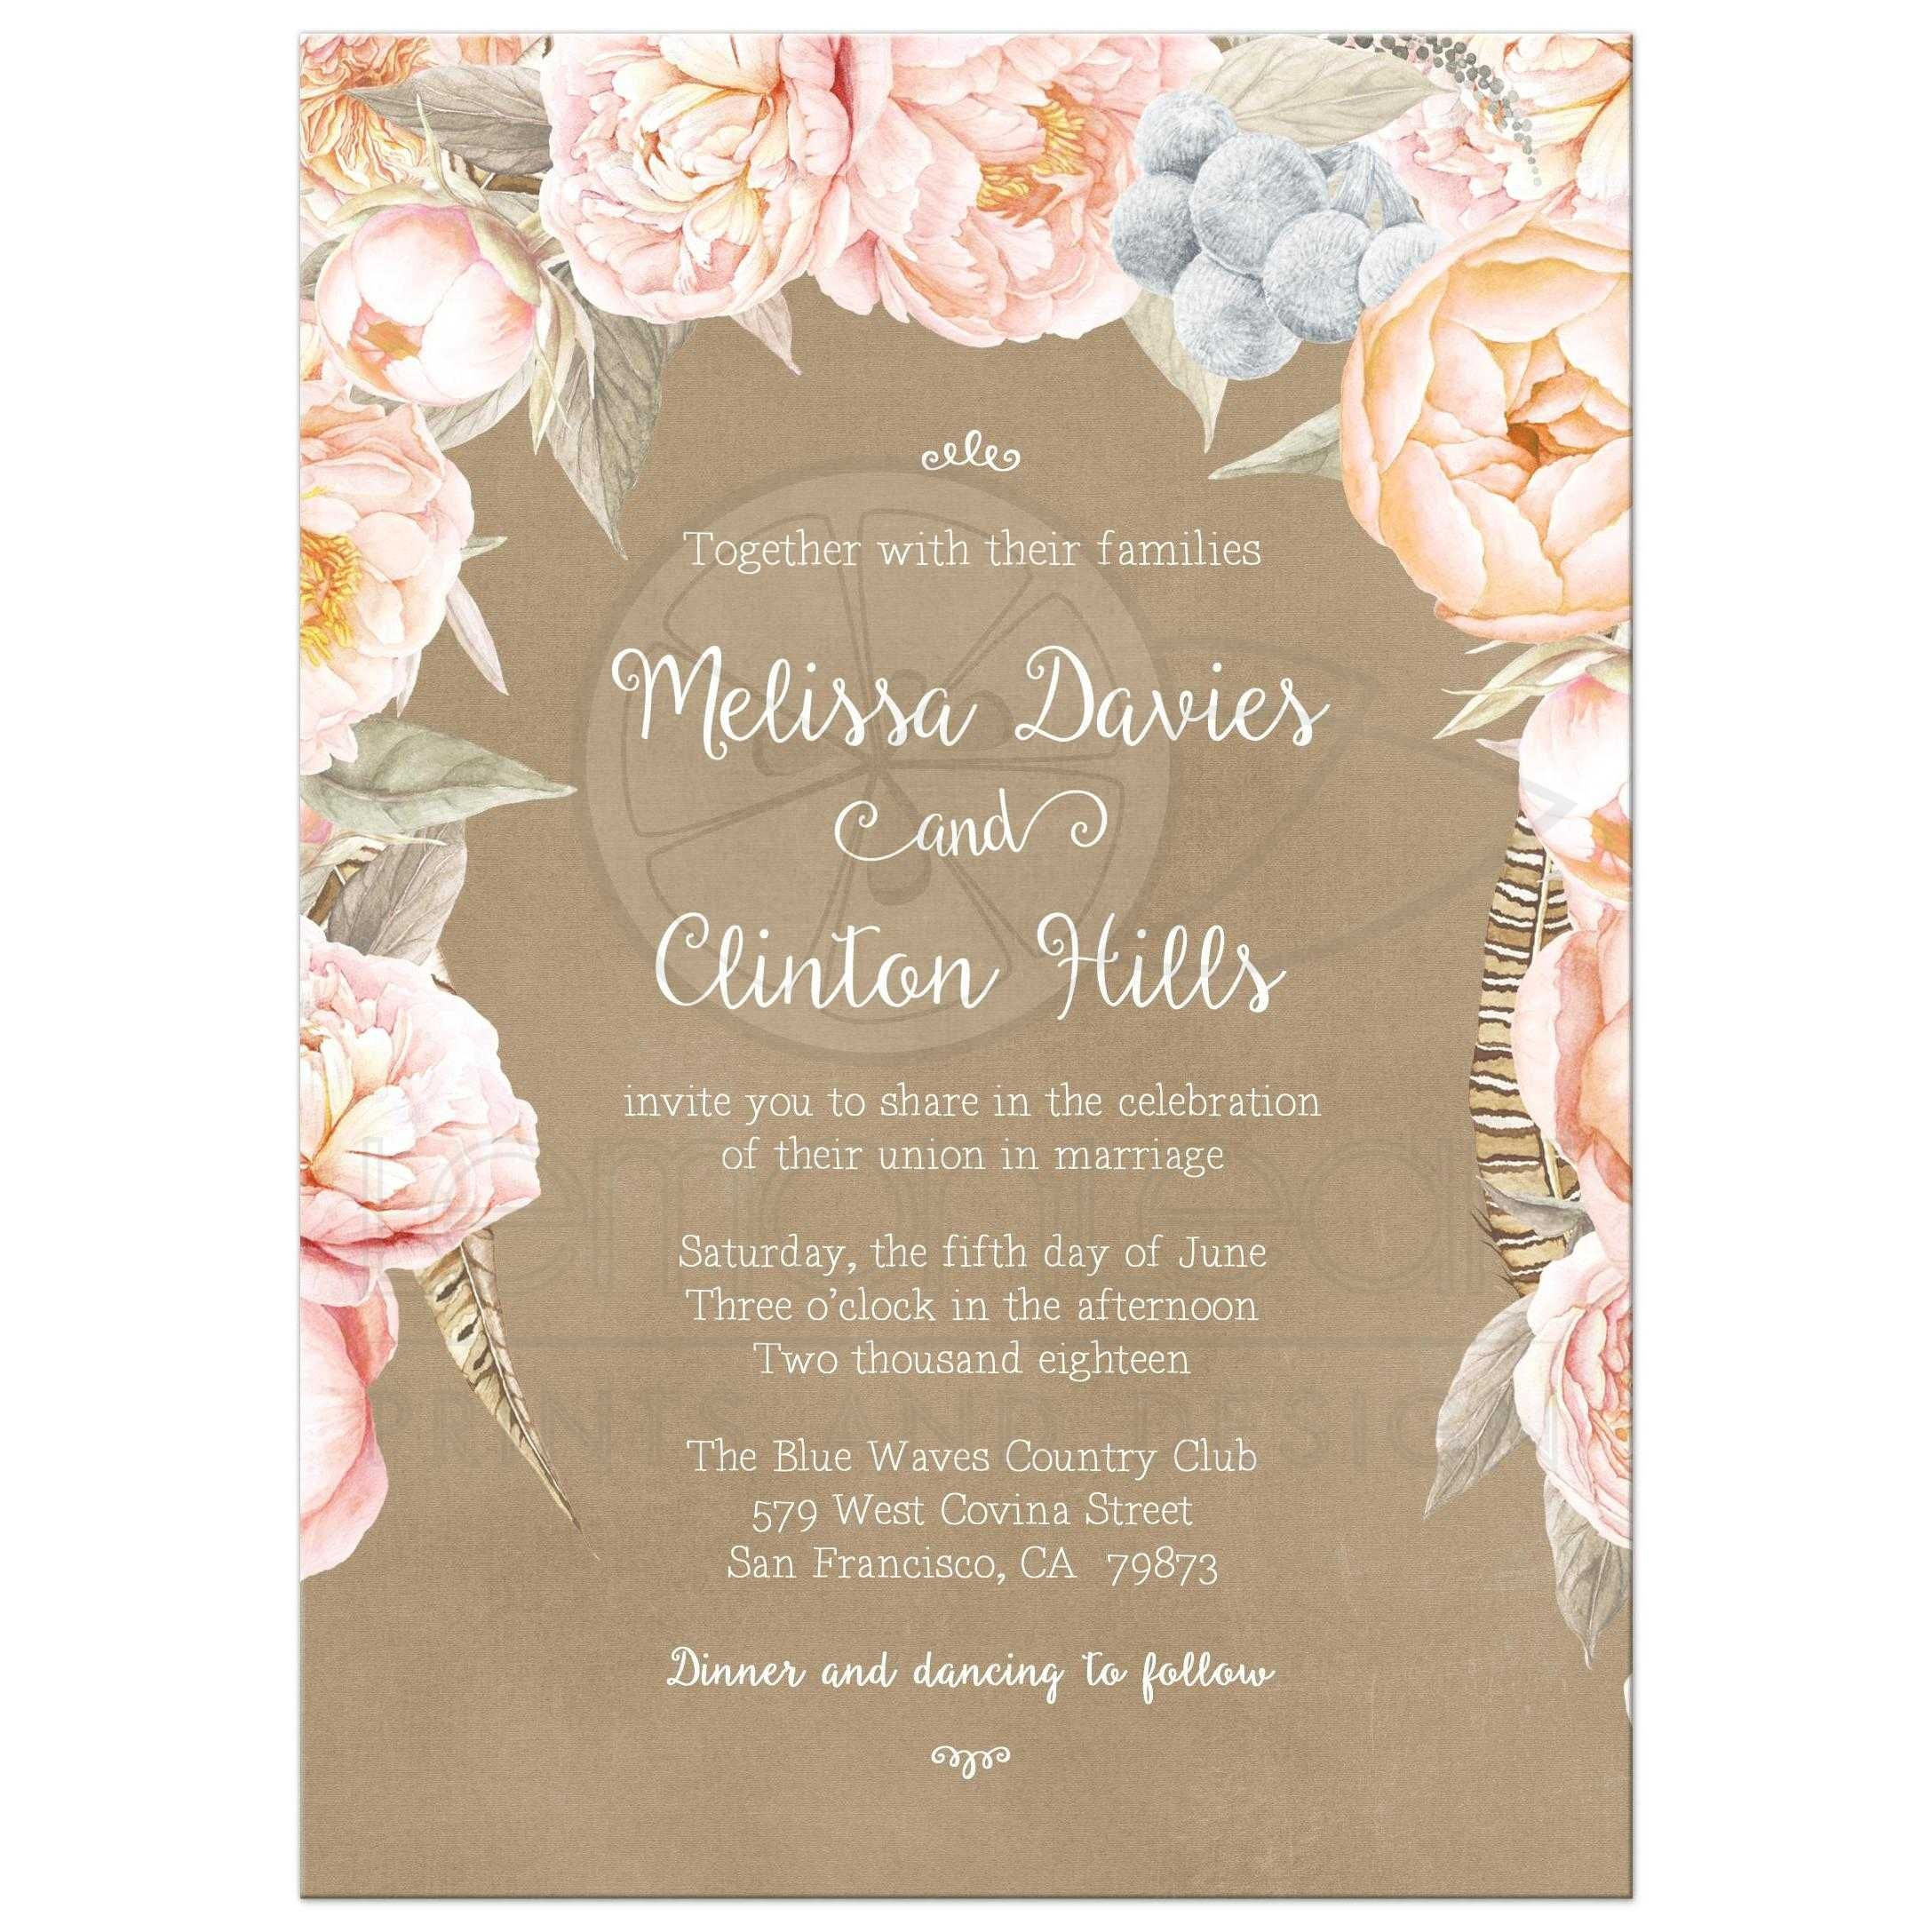 Eighteen ottawa wedding invitations – Presta wedding blogs